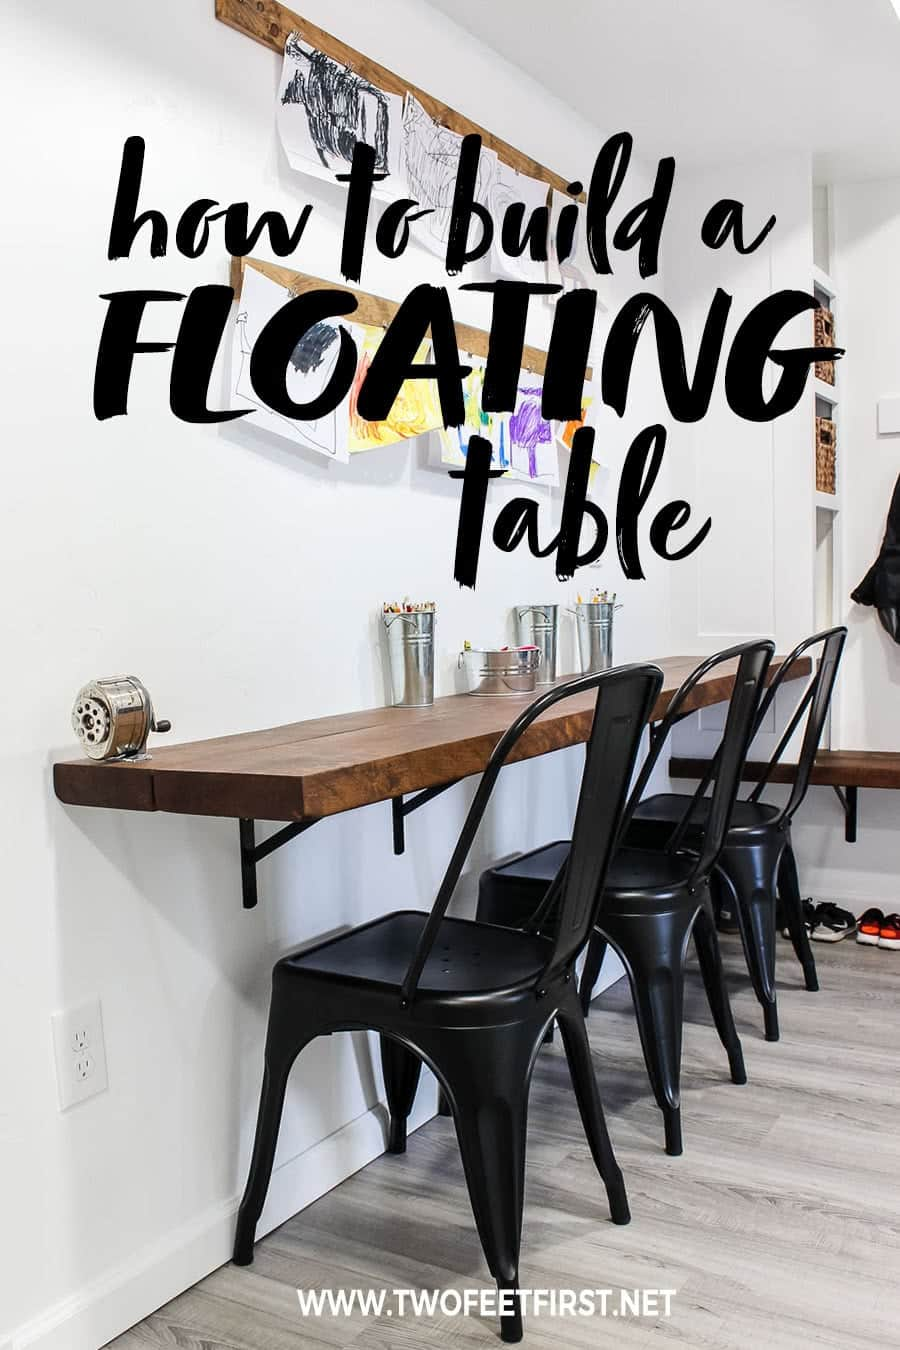 How to build a floating table